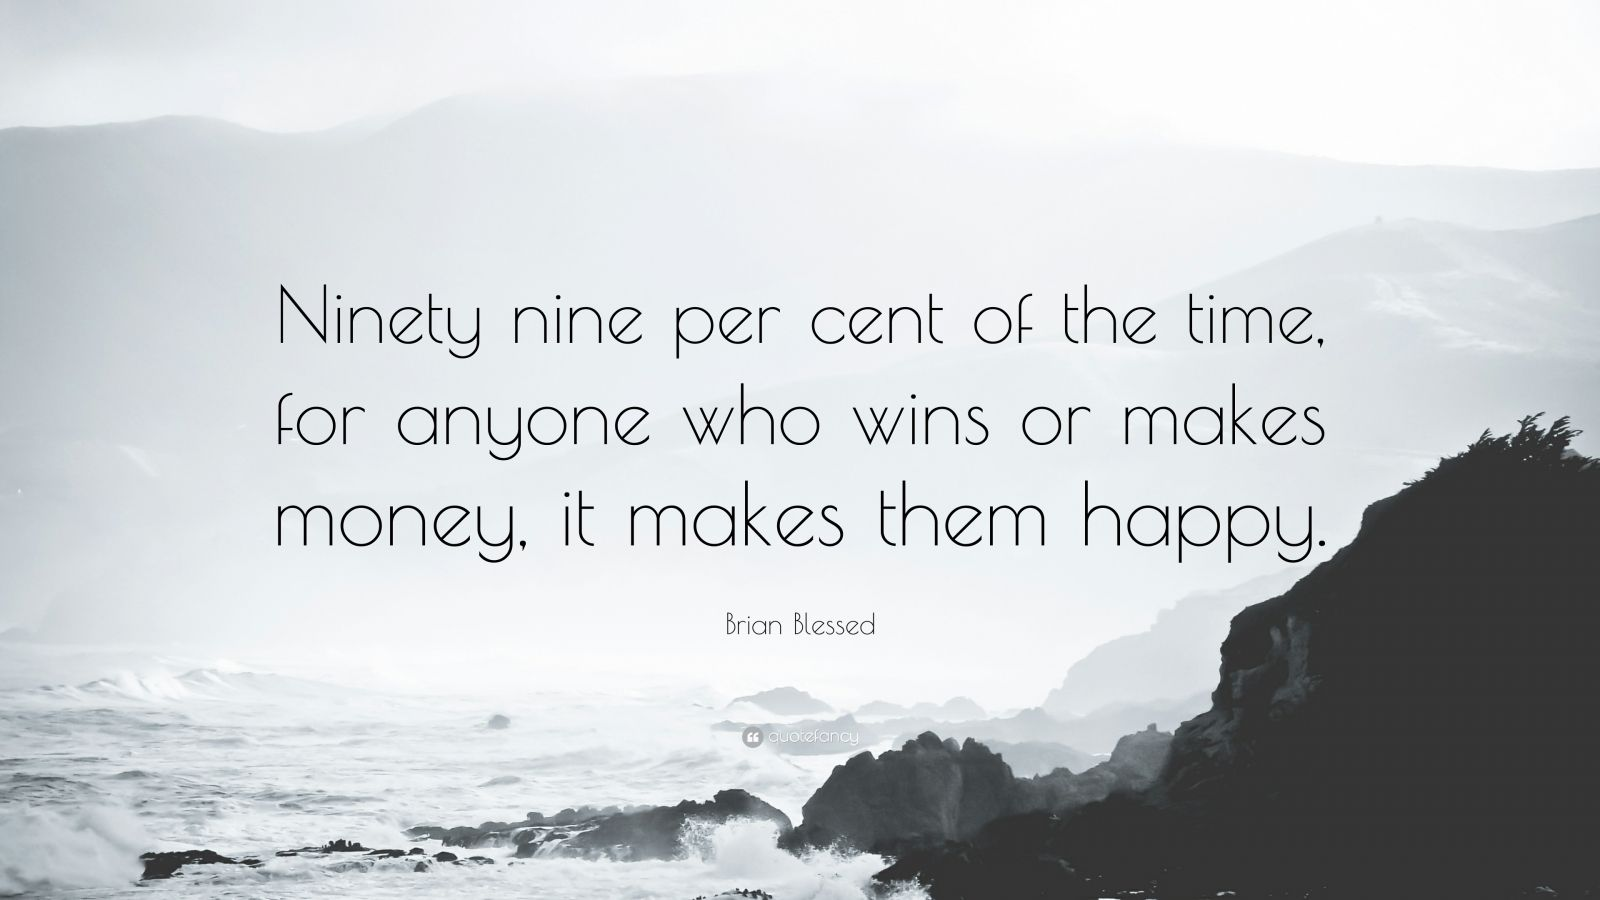 """Brian Blessed Quote: """"Ninety nine per cent of the time, for anyone who wins or makes money, it makes them happy."""""""